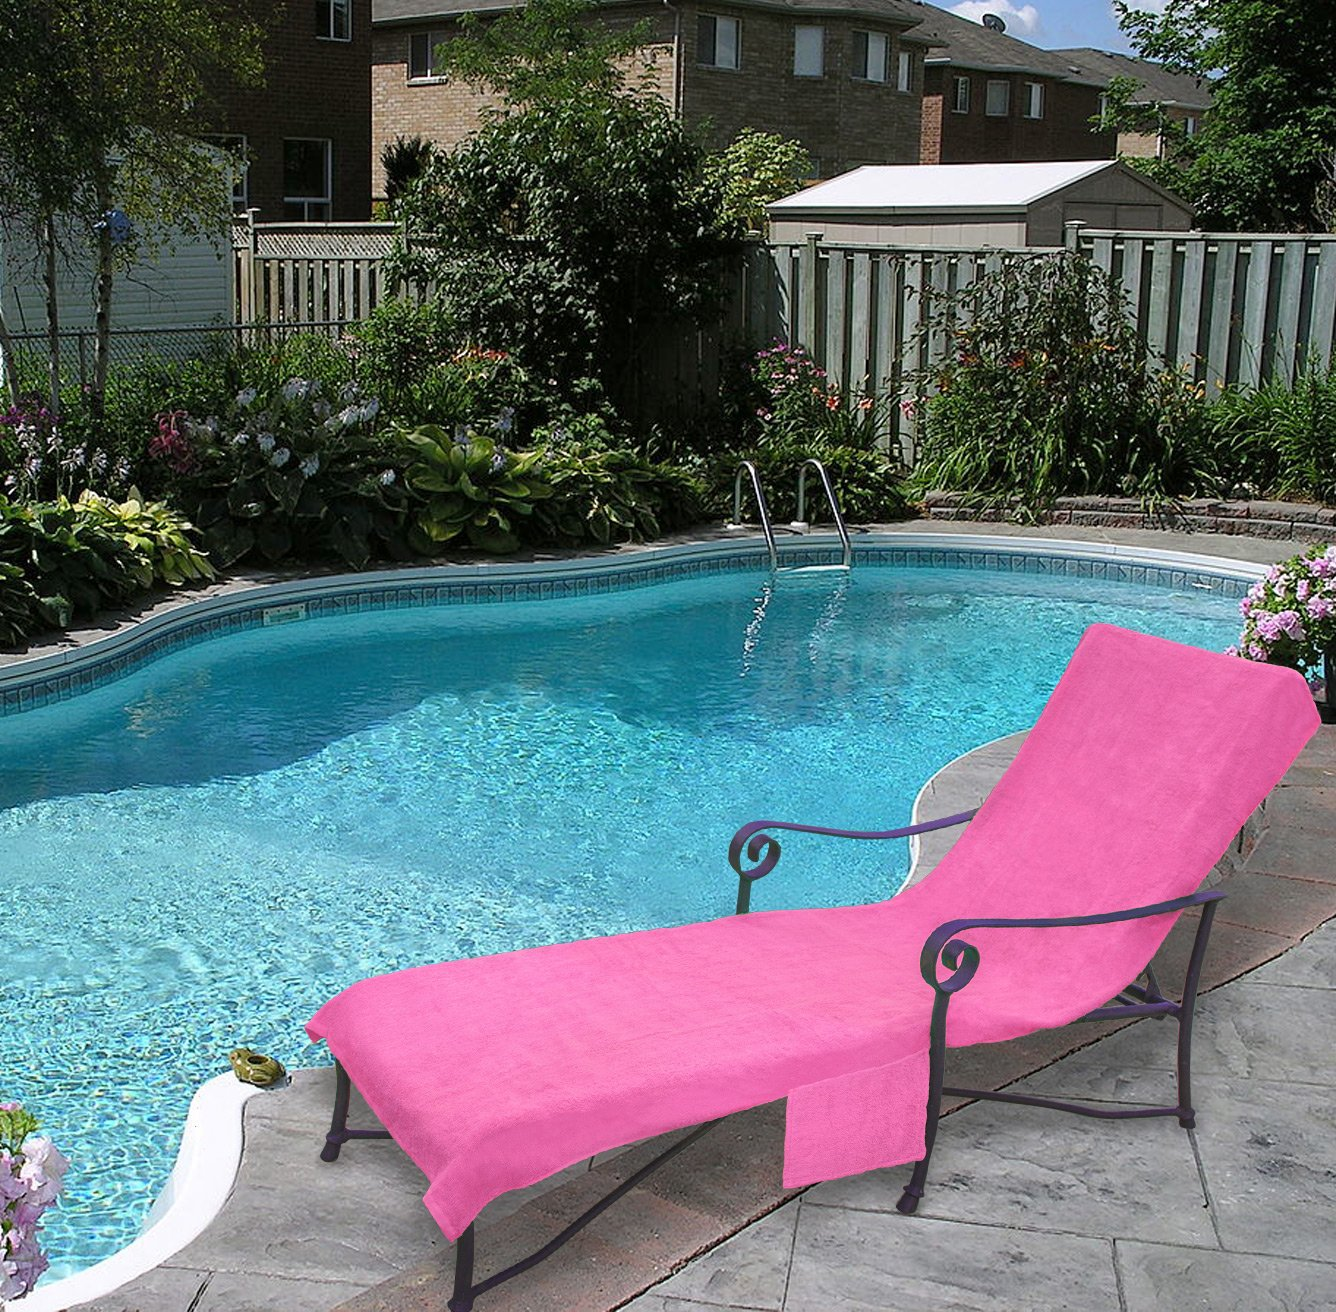 Pool lounge Chair Cover Pool Side 1000-Gram Chaise Cover Lawn Chair Cover Patio Chair Cover with 10-Inch Slip-on Back and Side Pocket Pool Paisley Purple